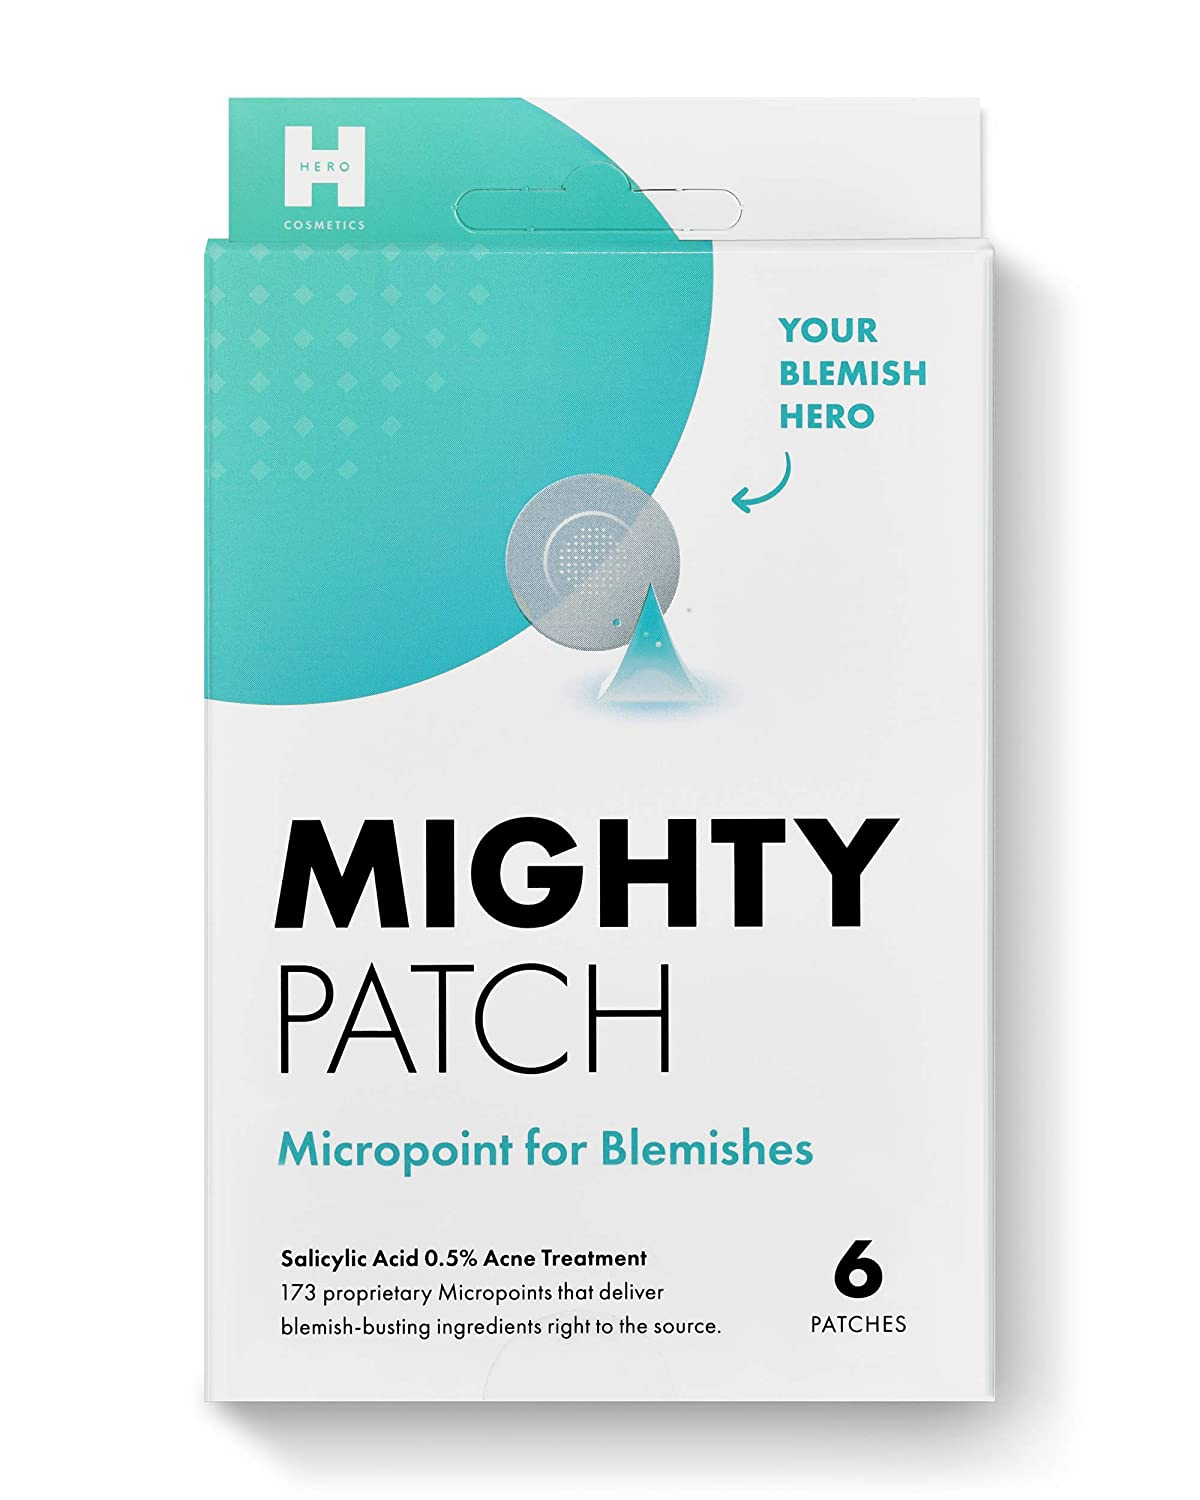 Mighty Patch Micropoint for Blemishes - Hydrocolloid Acne Spot Treatment for Early Stage and Deep Hidden Pimples (6 Patches)